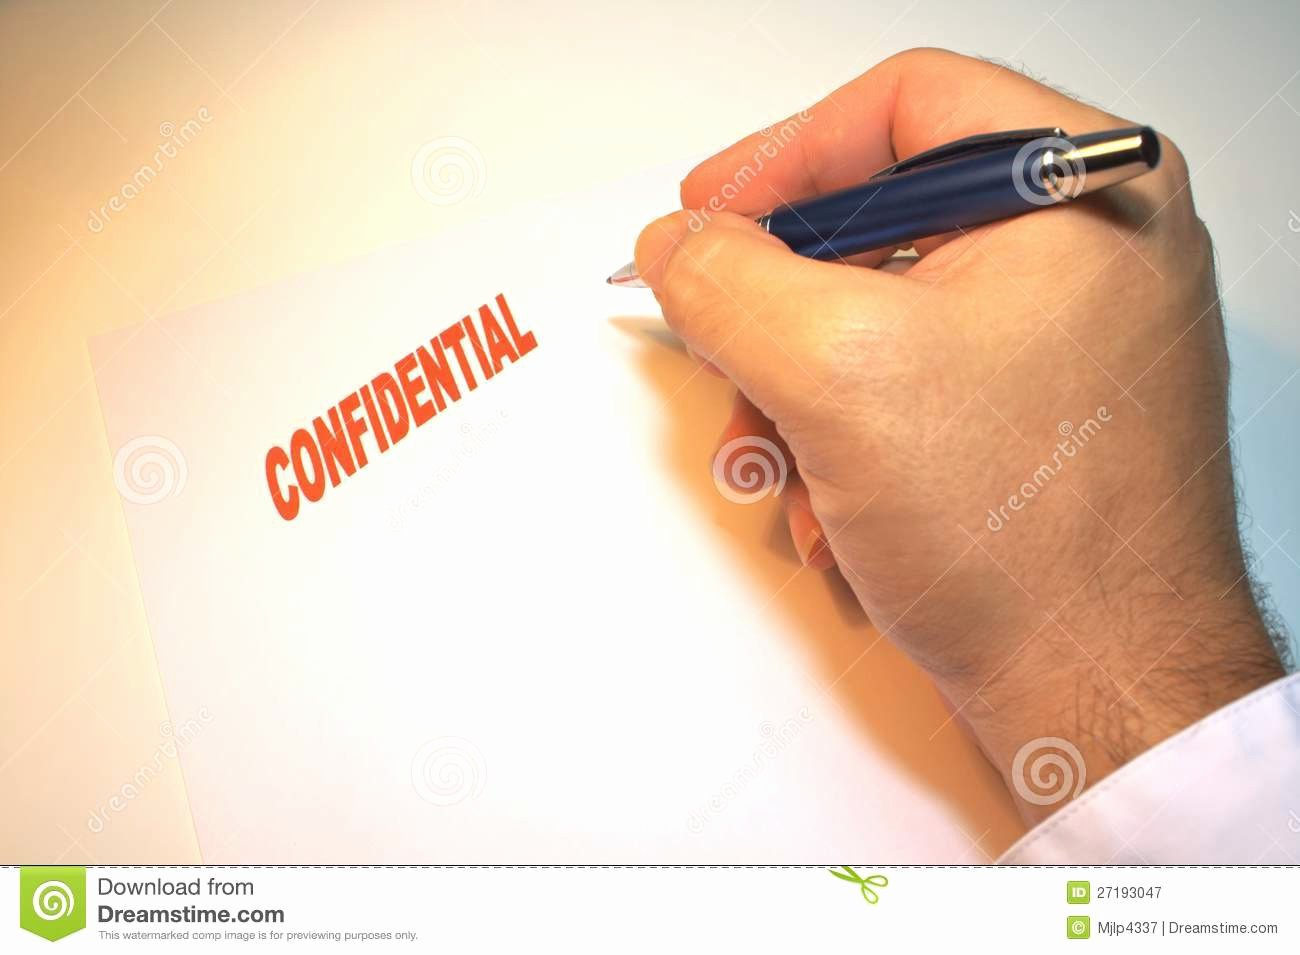 Confidential Notice for Documents Best Of Confidential Notice Stock Image Image Of Paper isolated